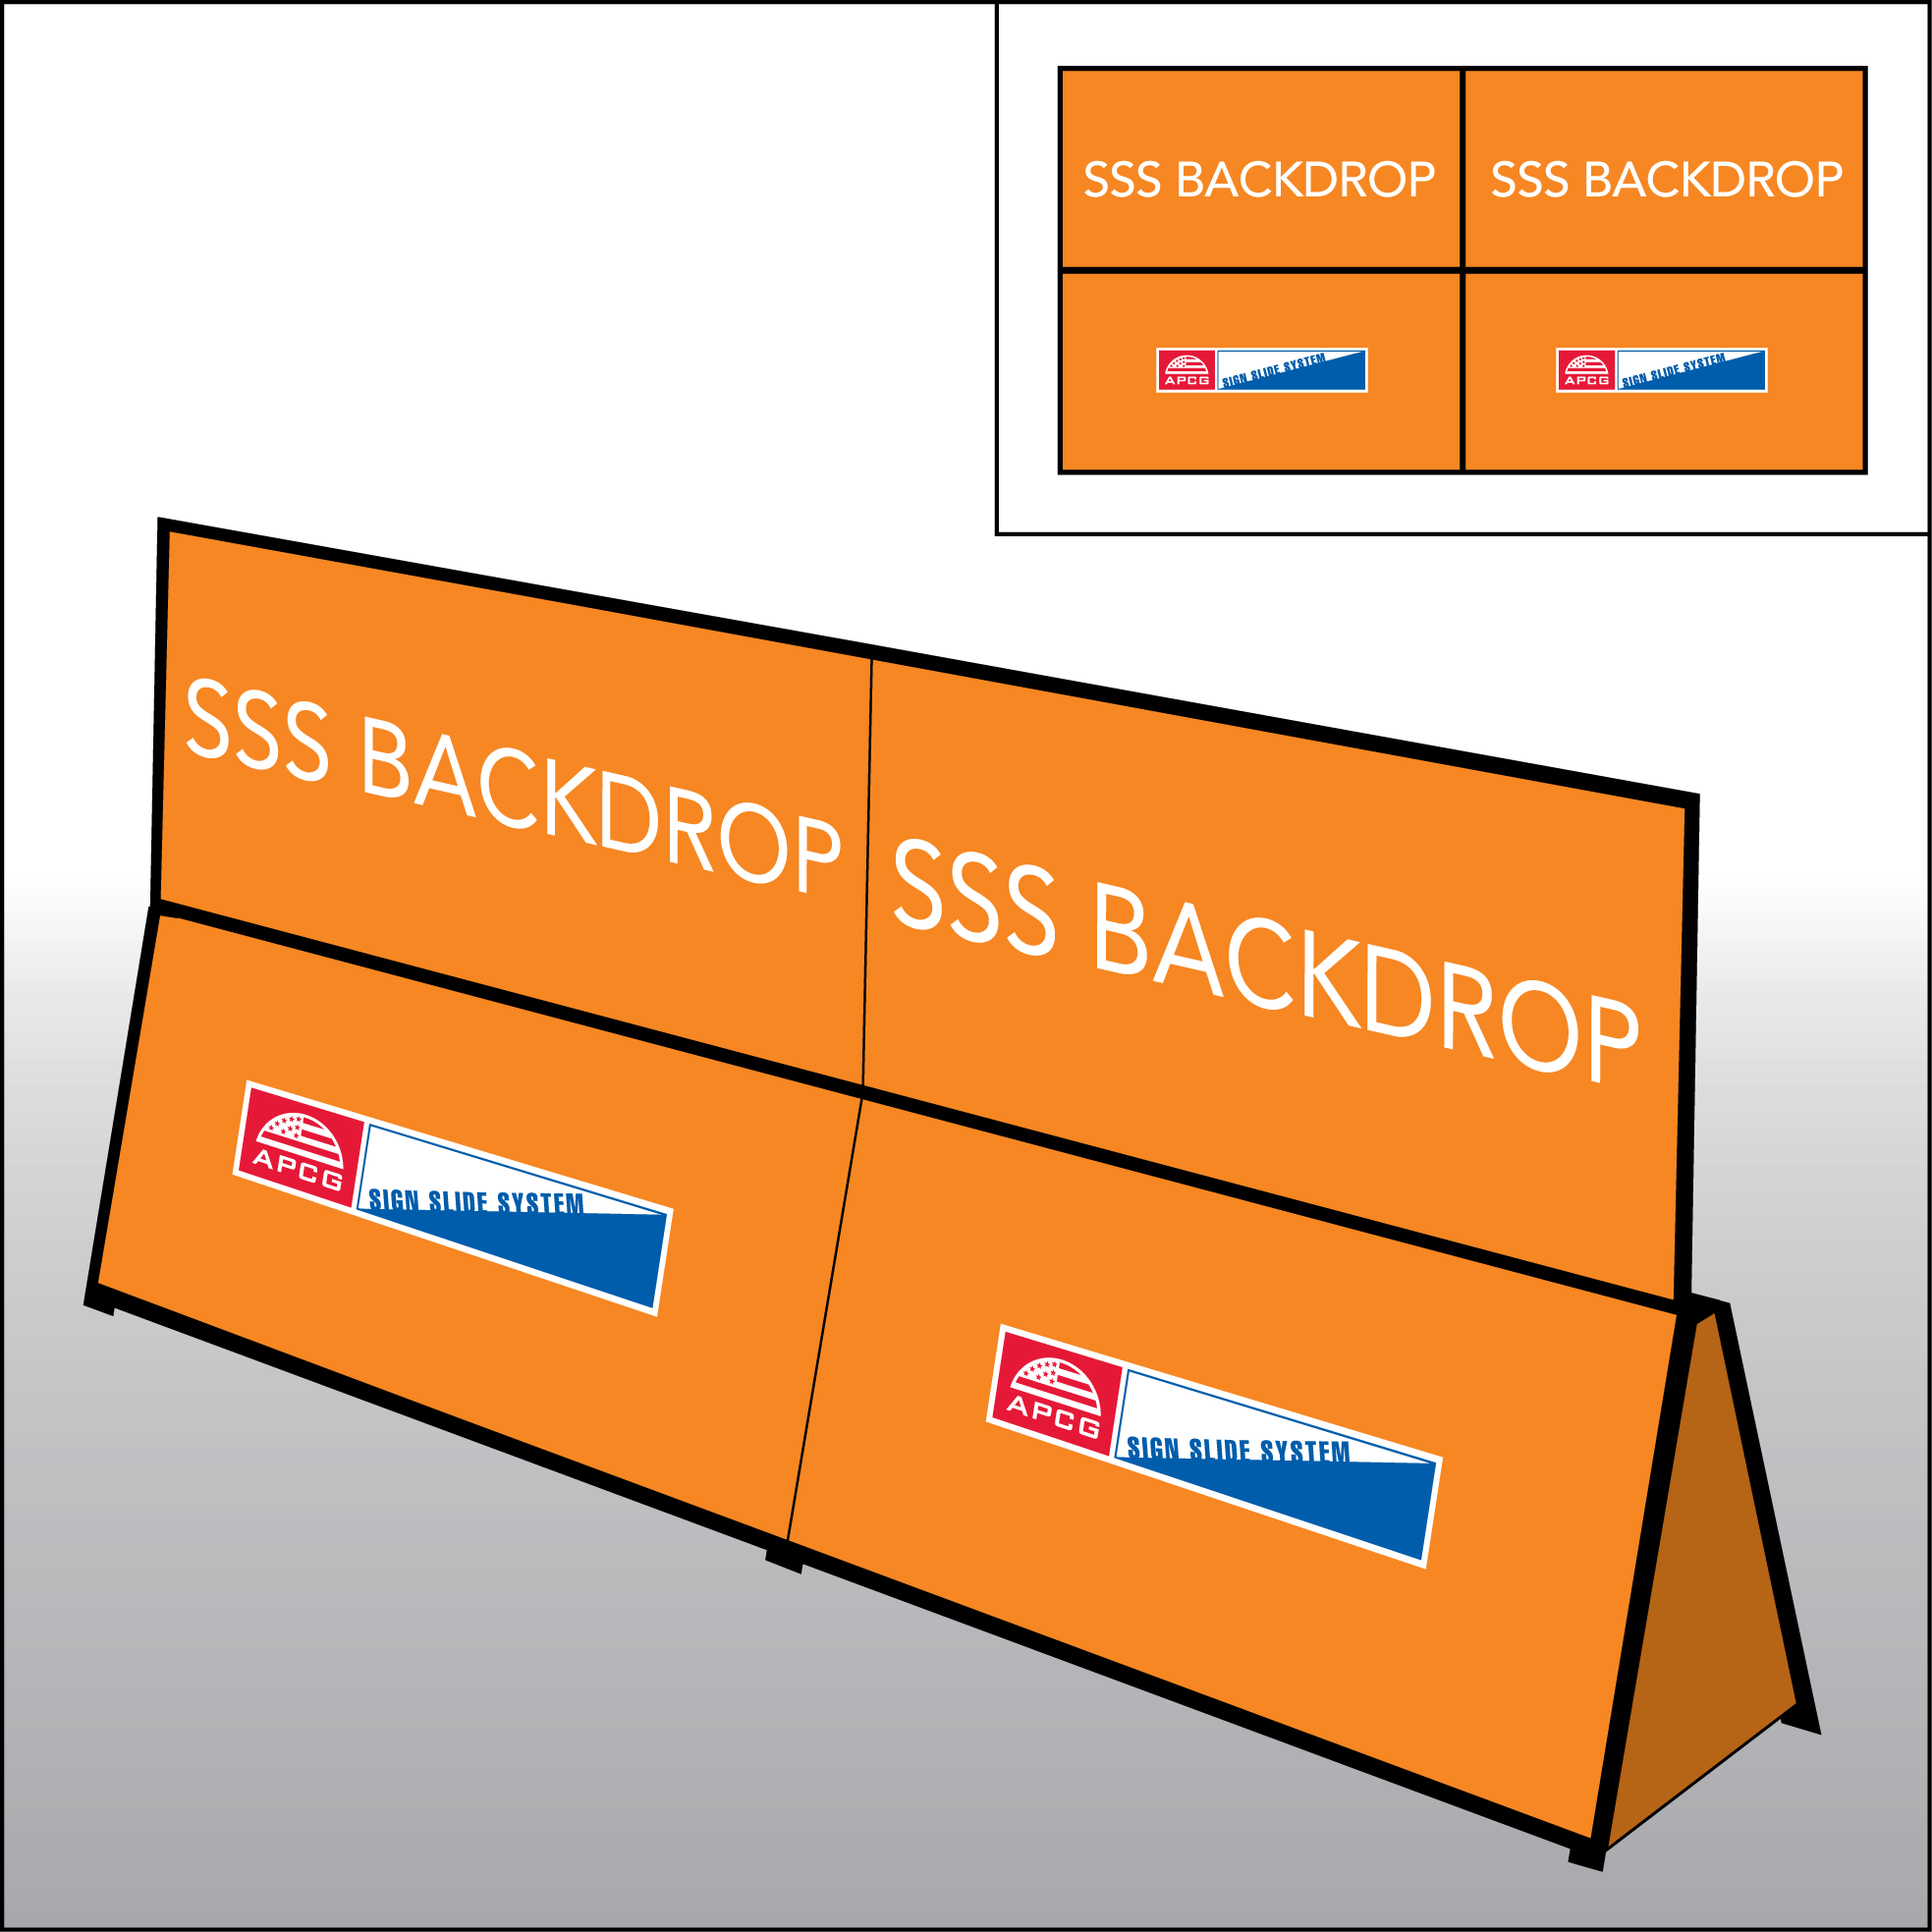 SSS_Backdrops2.png